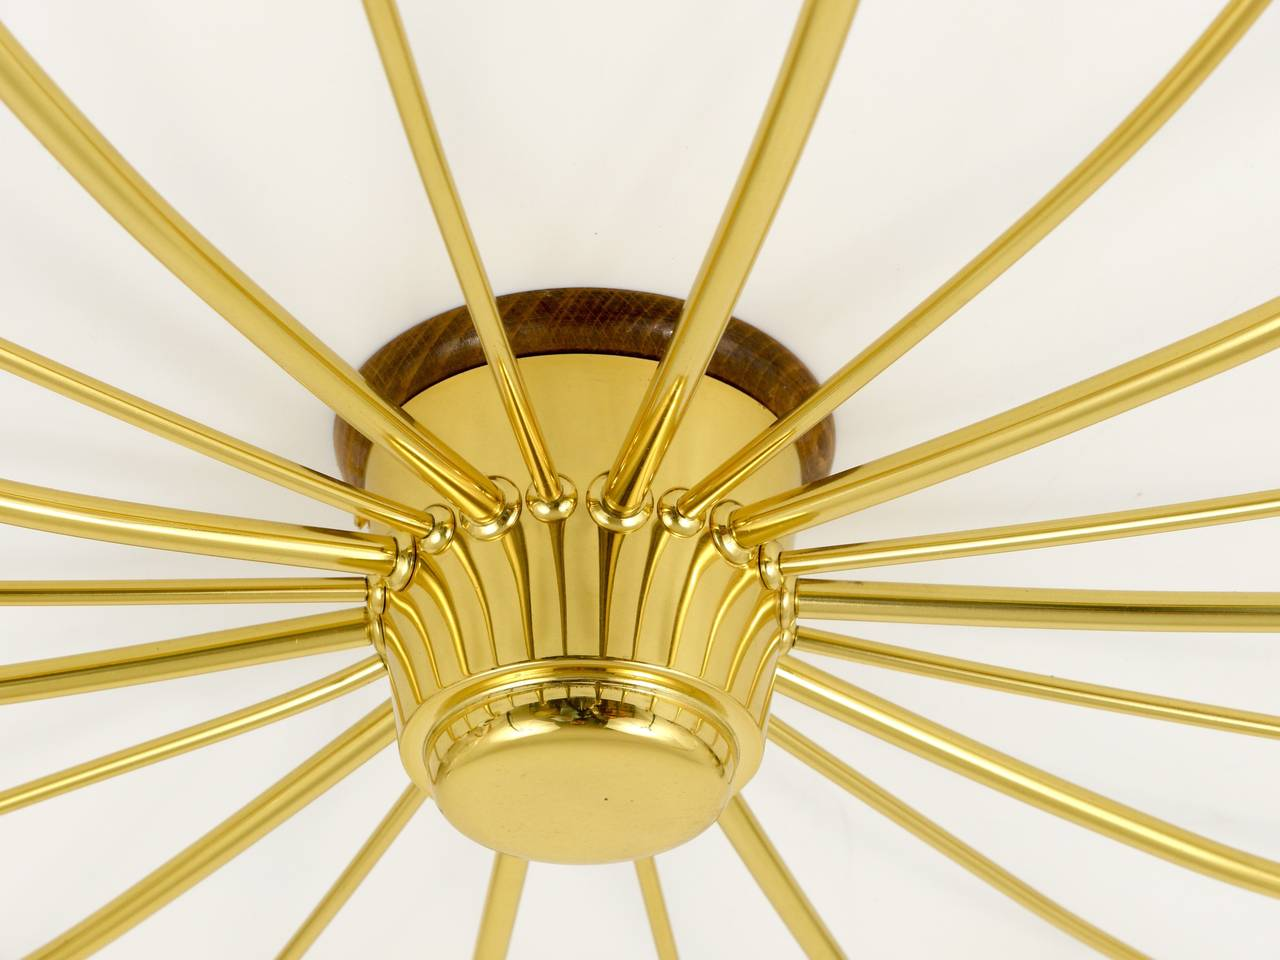 Kalmar Sonne Sun Shaped Modernist Brass Chandelier Flush Mount, Austria, 1950s For Sale 3